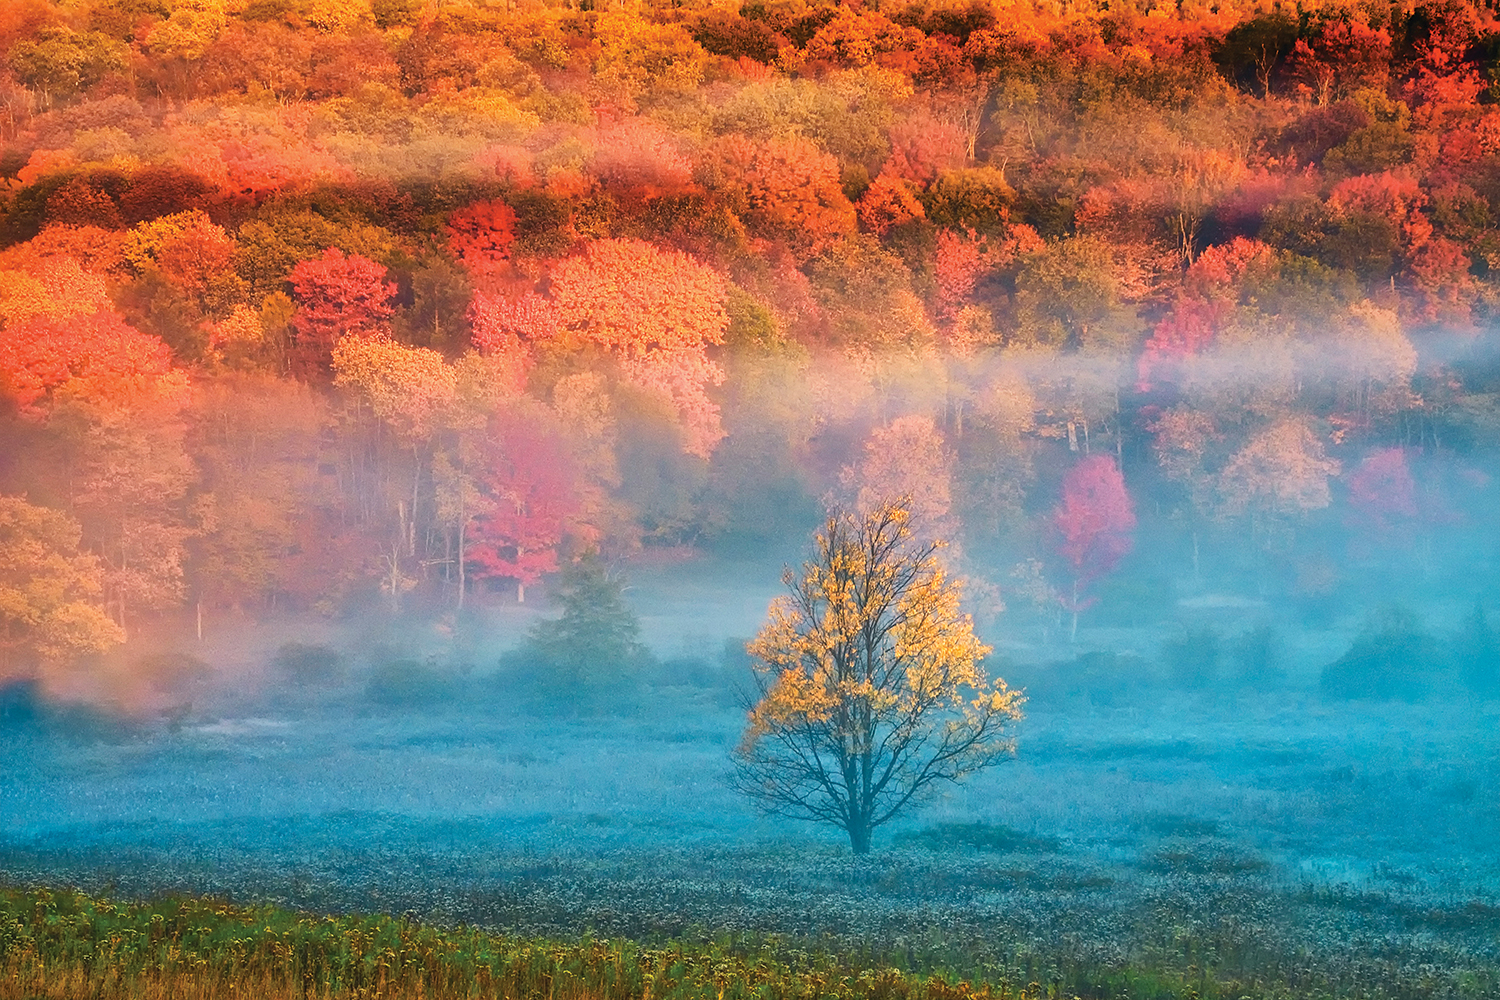 Landscape photo of single tree surrounded by forest of red and orange trees in autumn